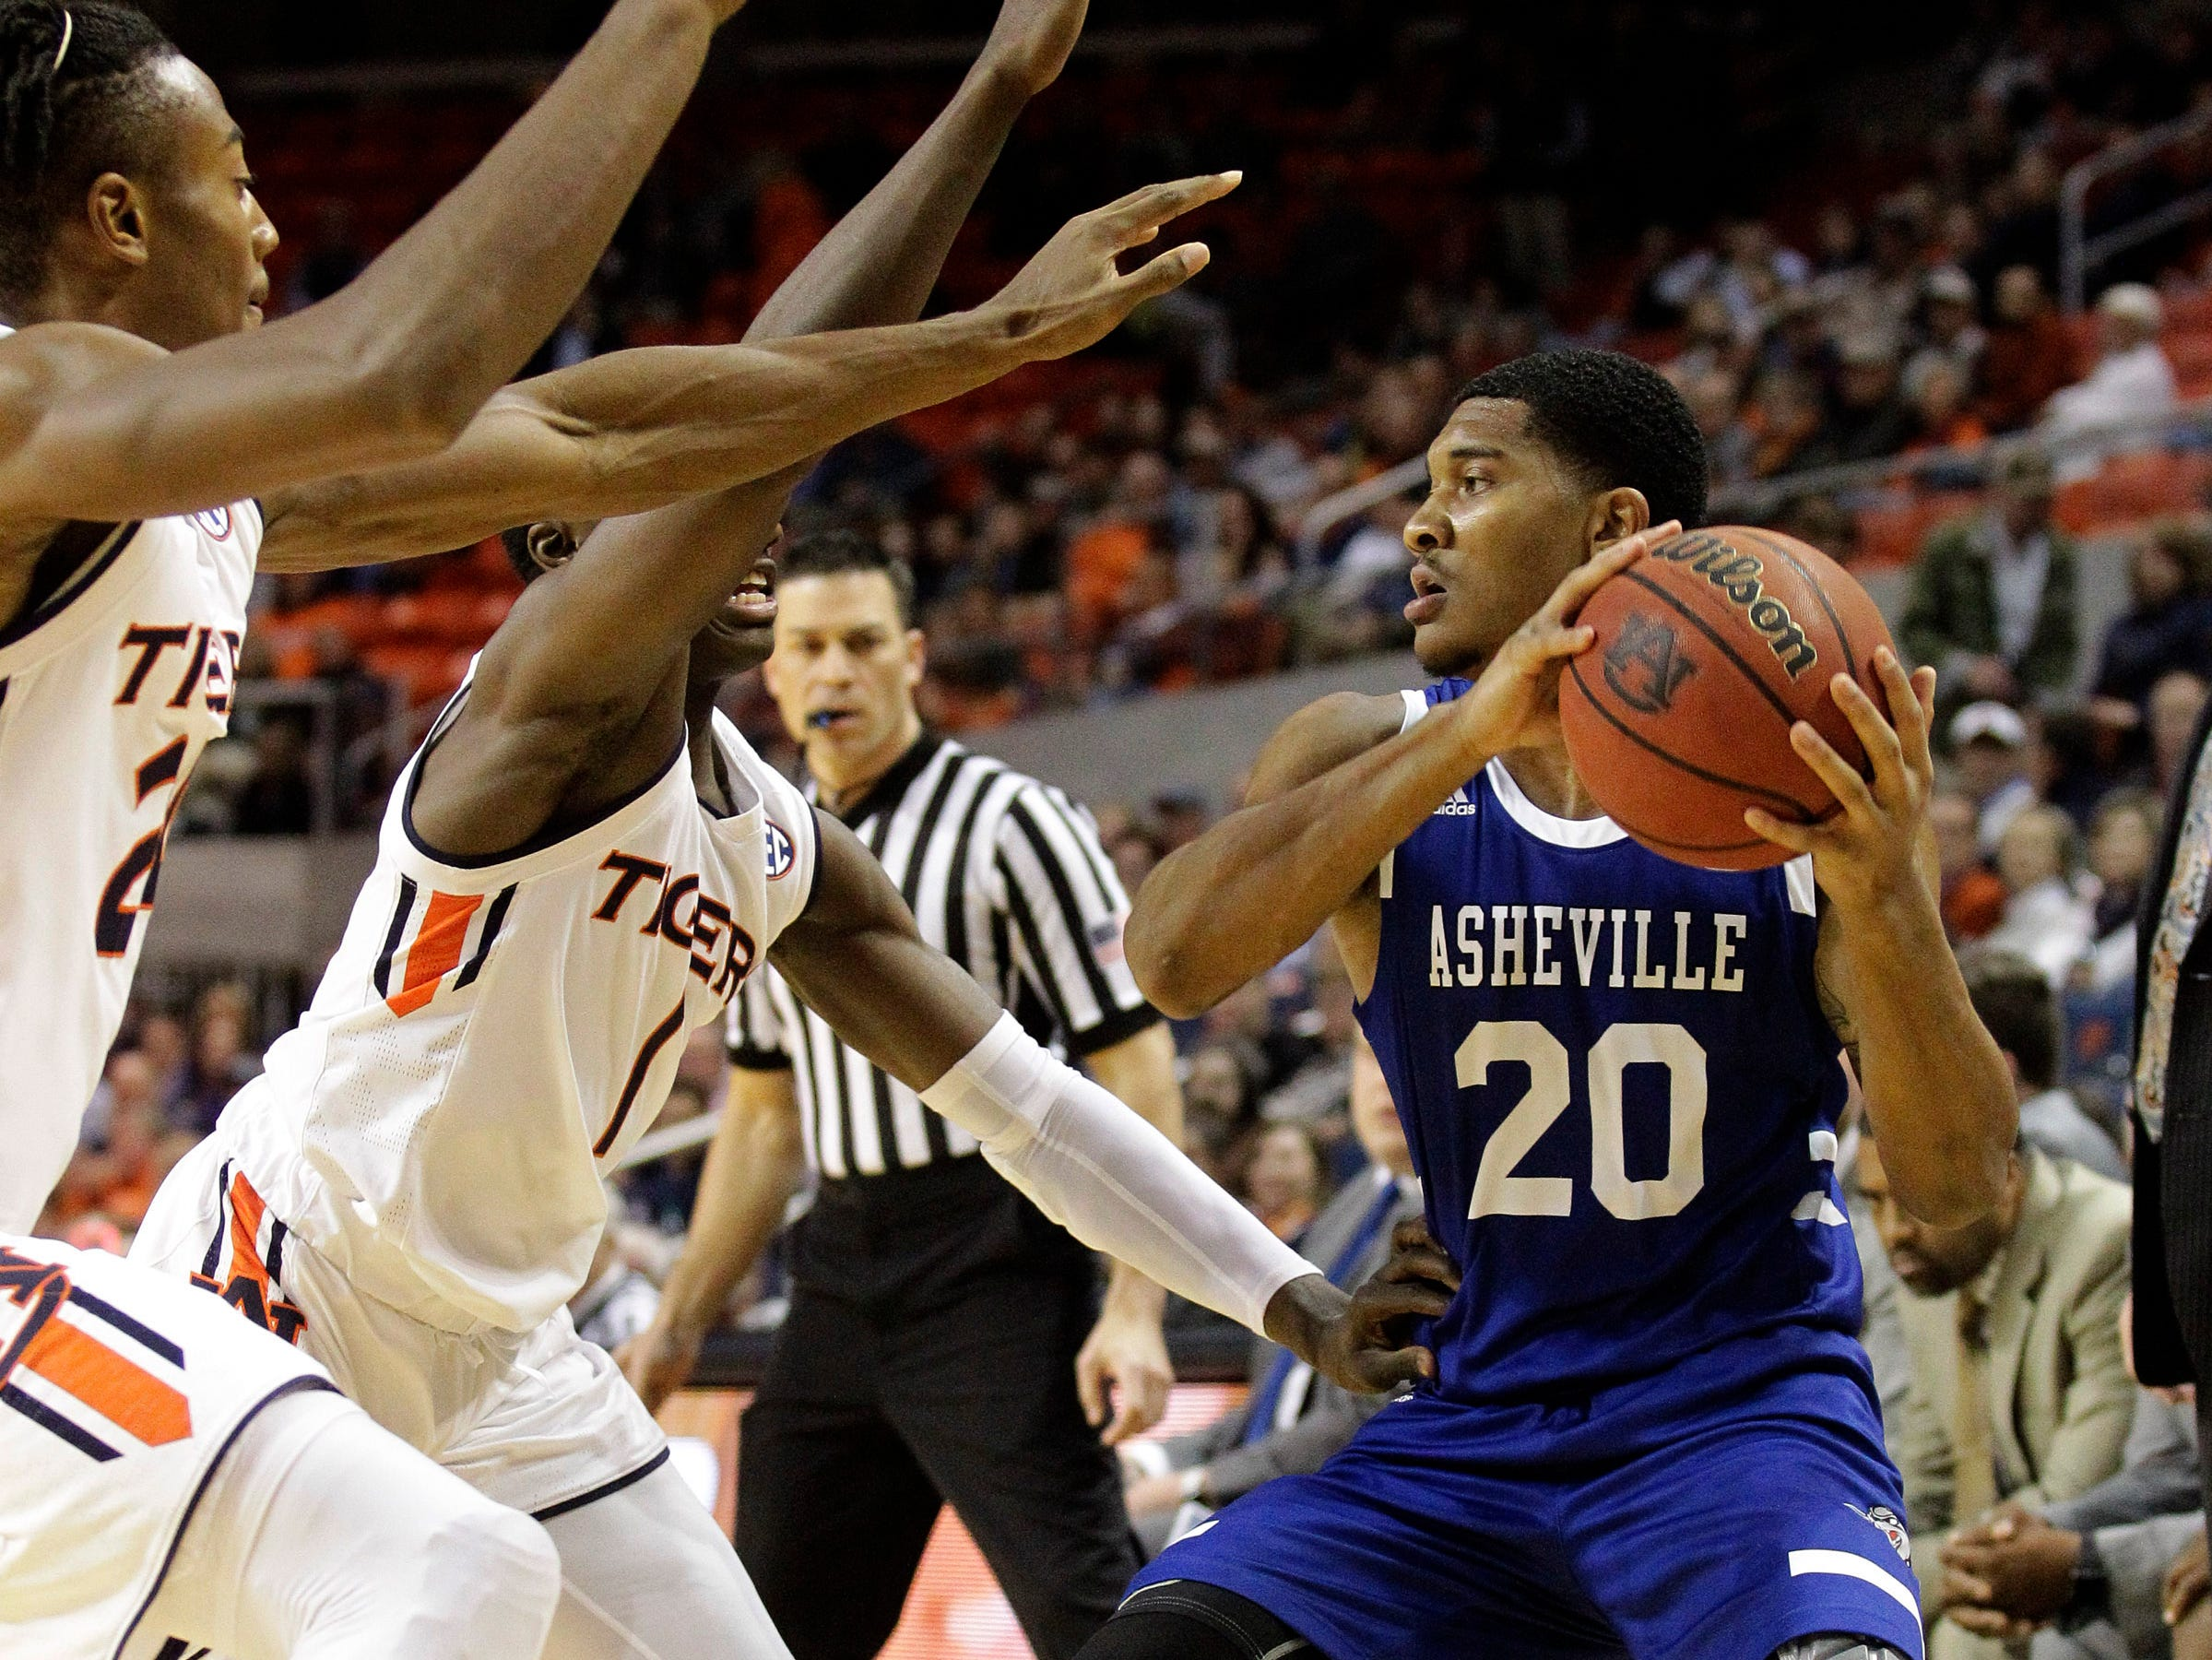 Dec 4, 2018; Auburn, AL, USA; Auburn Tigers forward Anfernee McLemore (left) and guard Jared Harper (middle) pressure UNC-Asheville Bulldogs guard DeVon Baker (20) during the first half at Auburn Arena. Mandatory Credit: John Reed-USA TODAY Sports